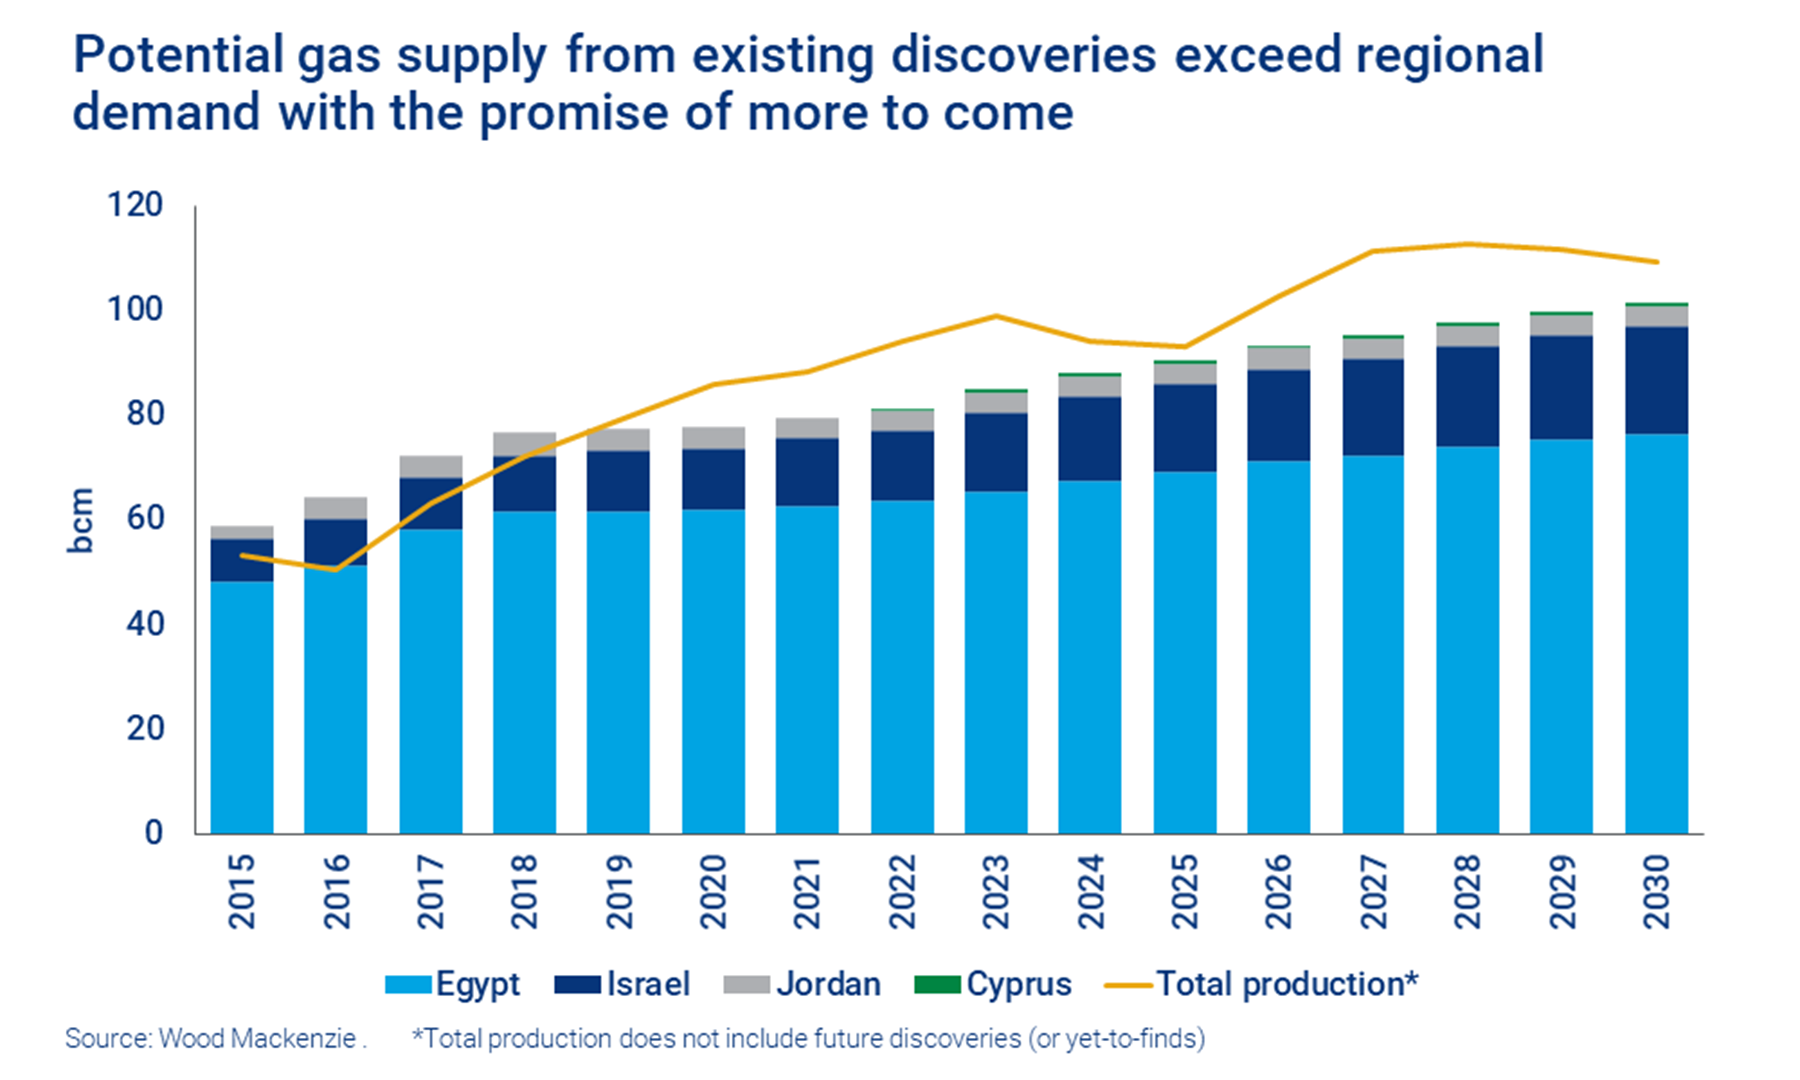 Chart shows that the potential gas supply from existing discoveries exceed regional demand